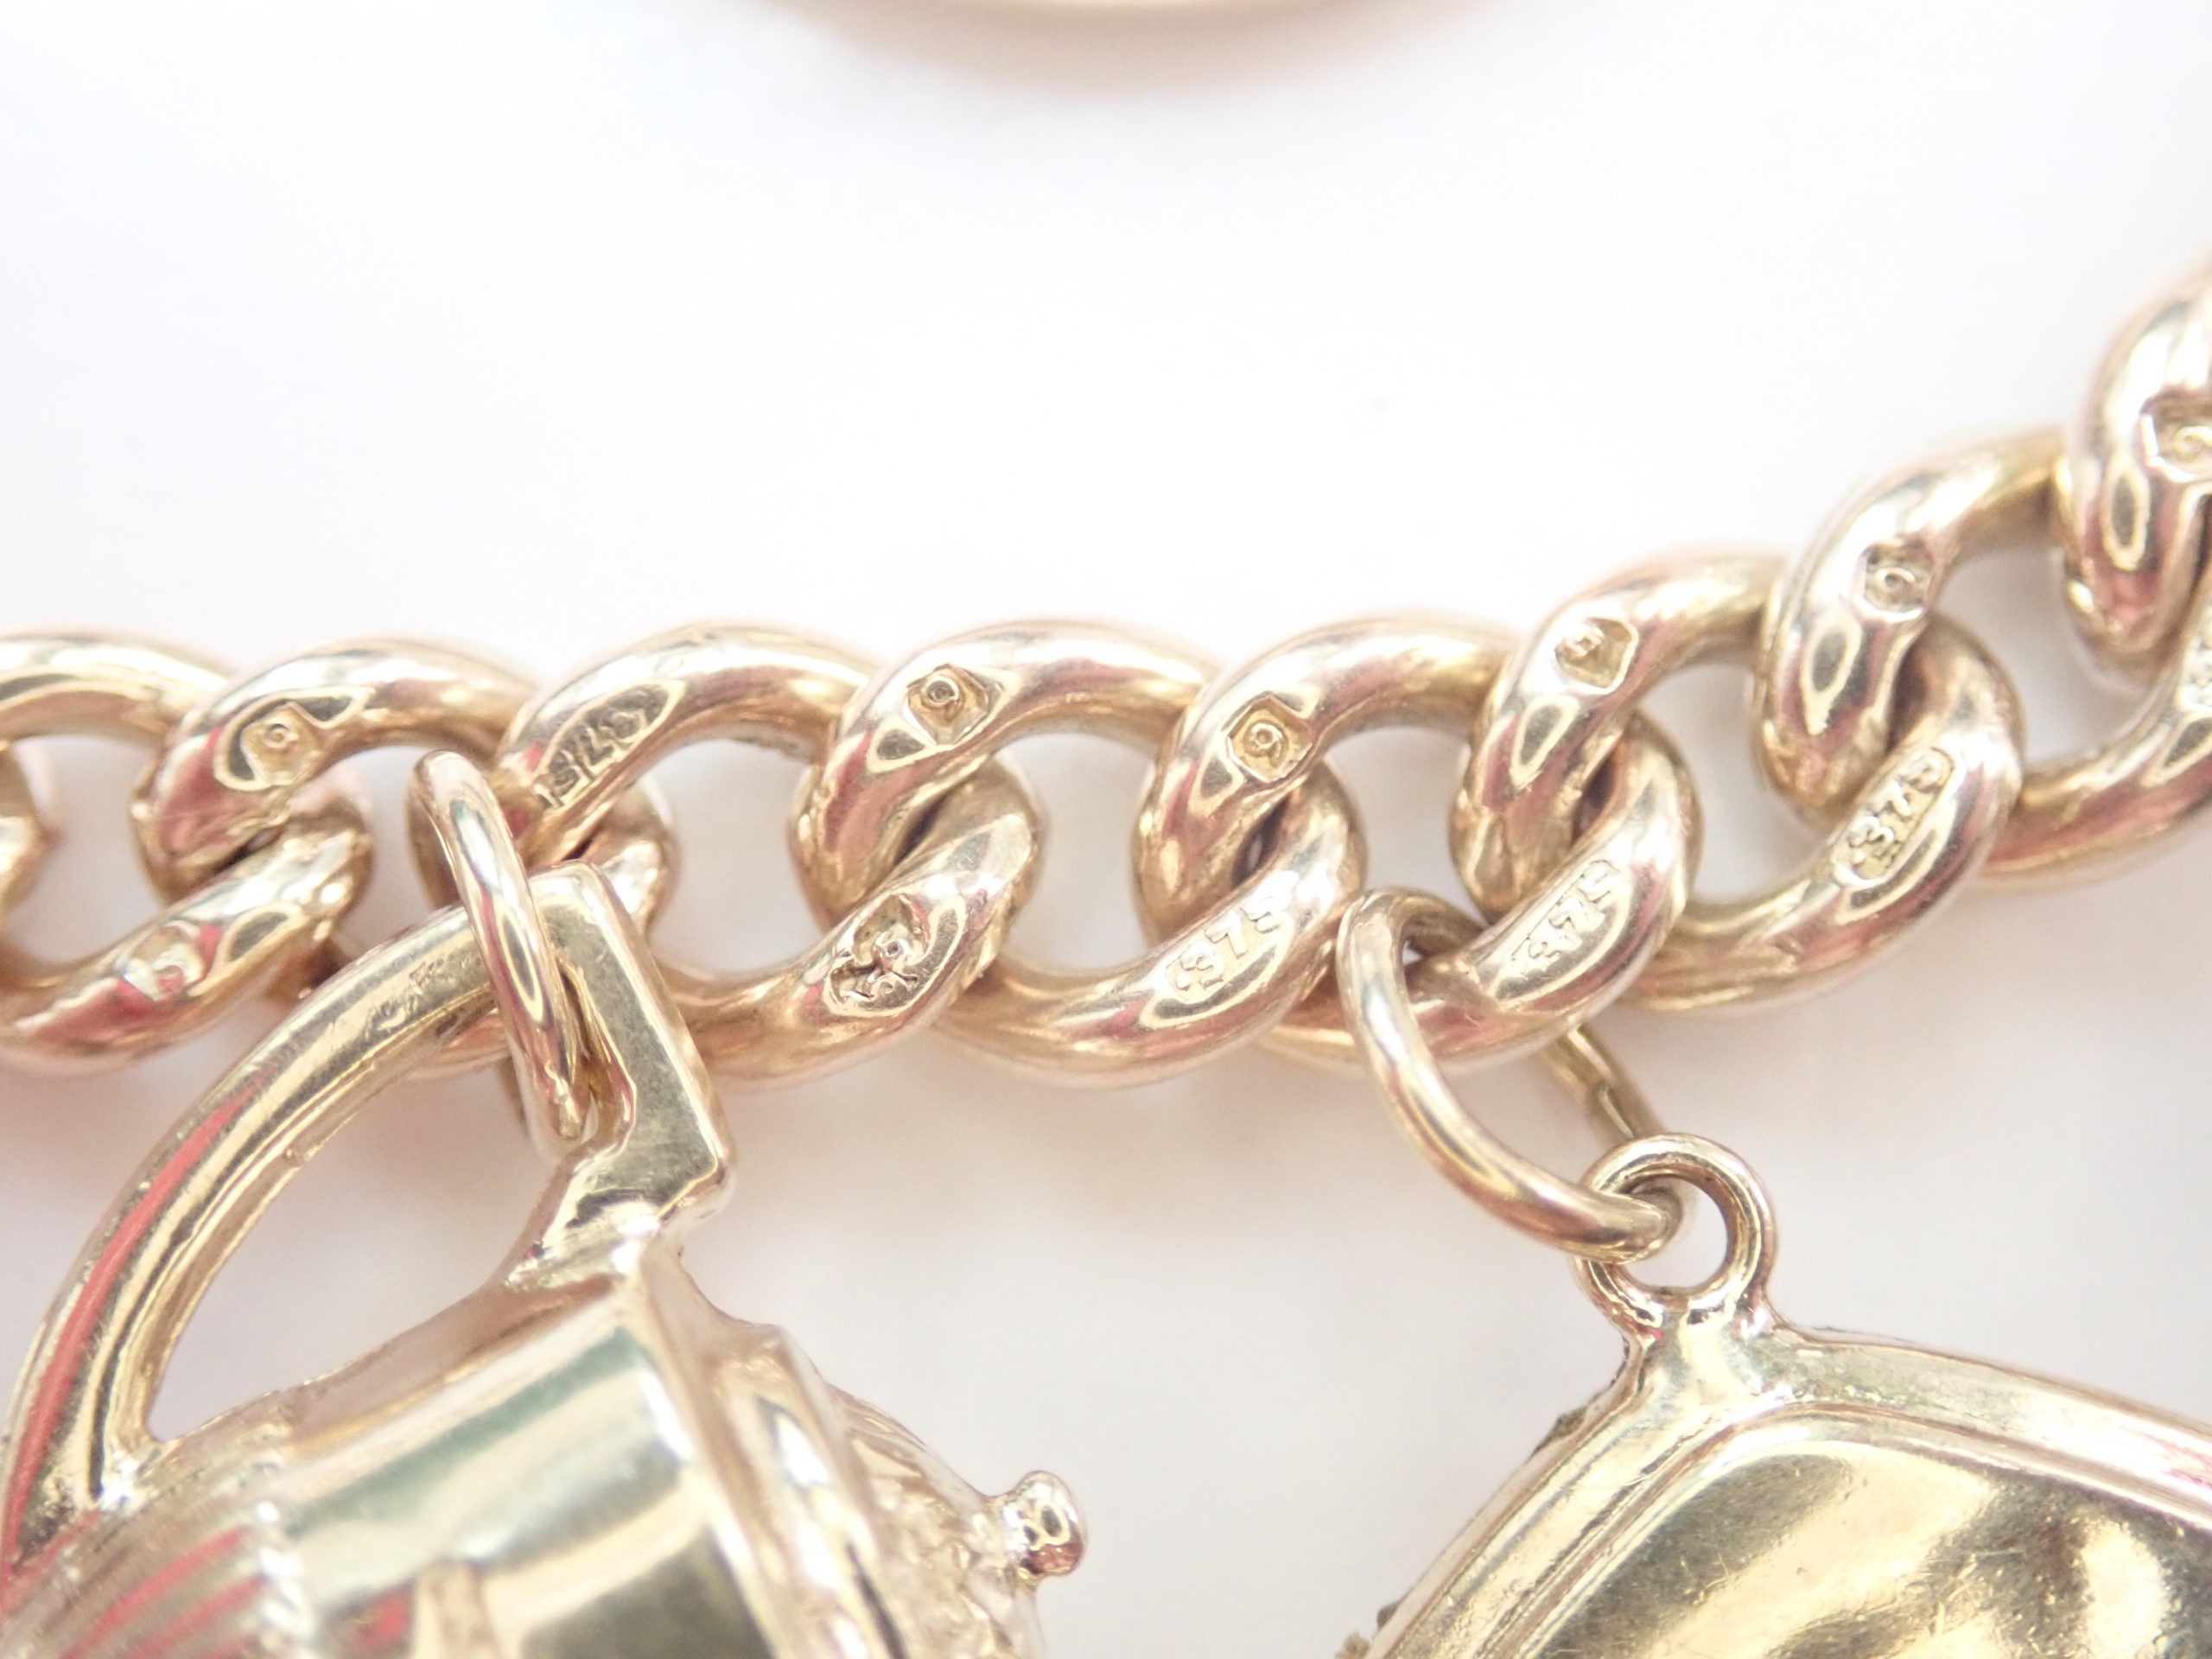 """AZZ00614 1 scaled - Heavy!! 50 grams 9k &22 Yellow Gold Curb Chain 12 Charms Bracelet 8"""" #1085"""